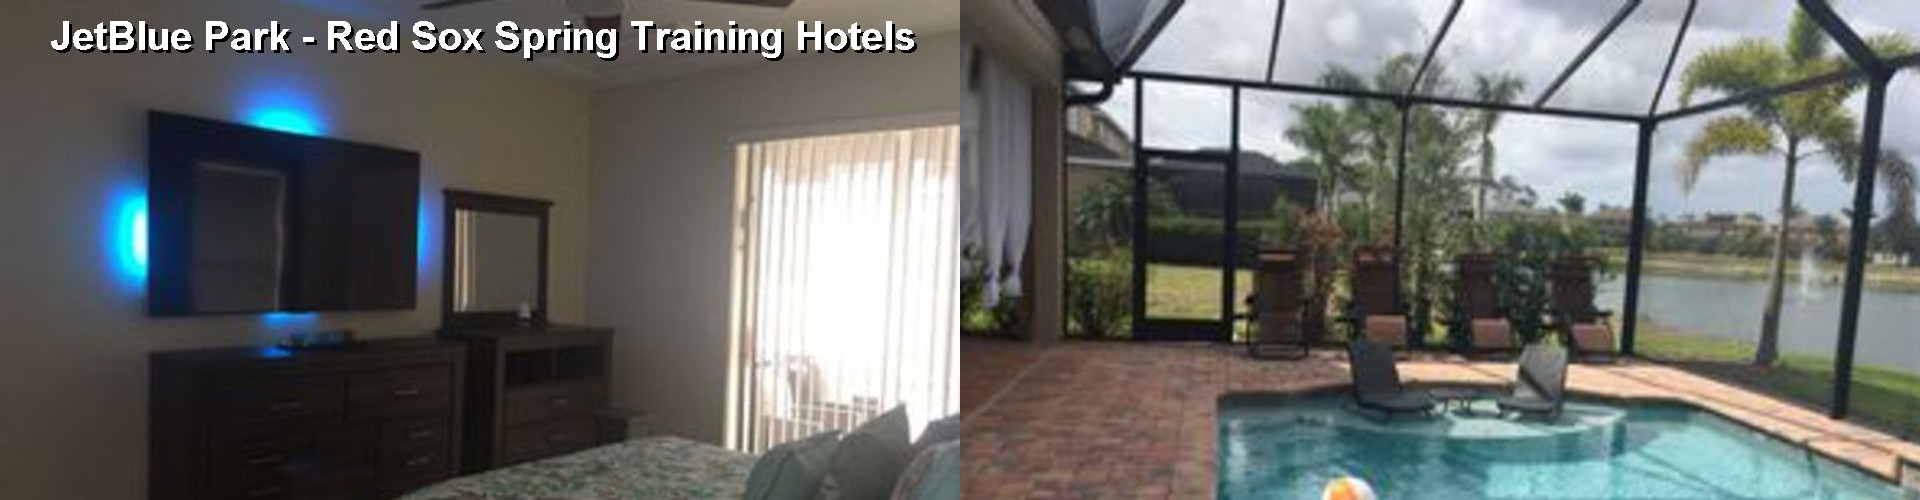 5 Best Hotels near JetBlue Park - Red Sox Spring Training